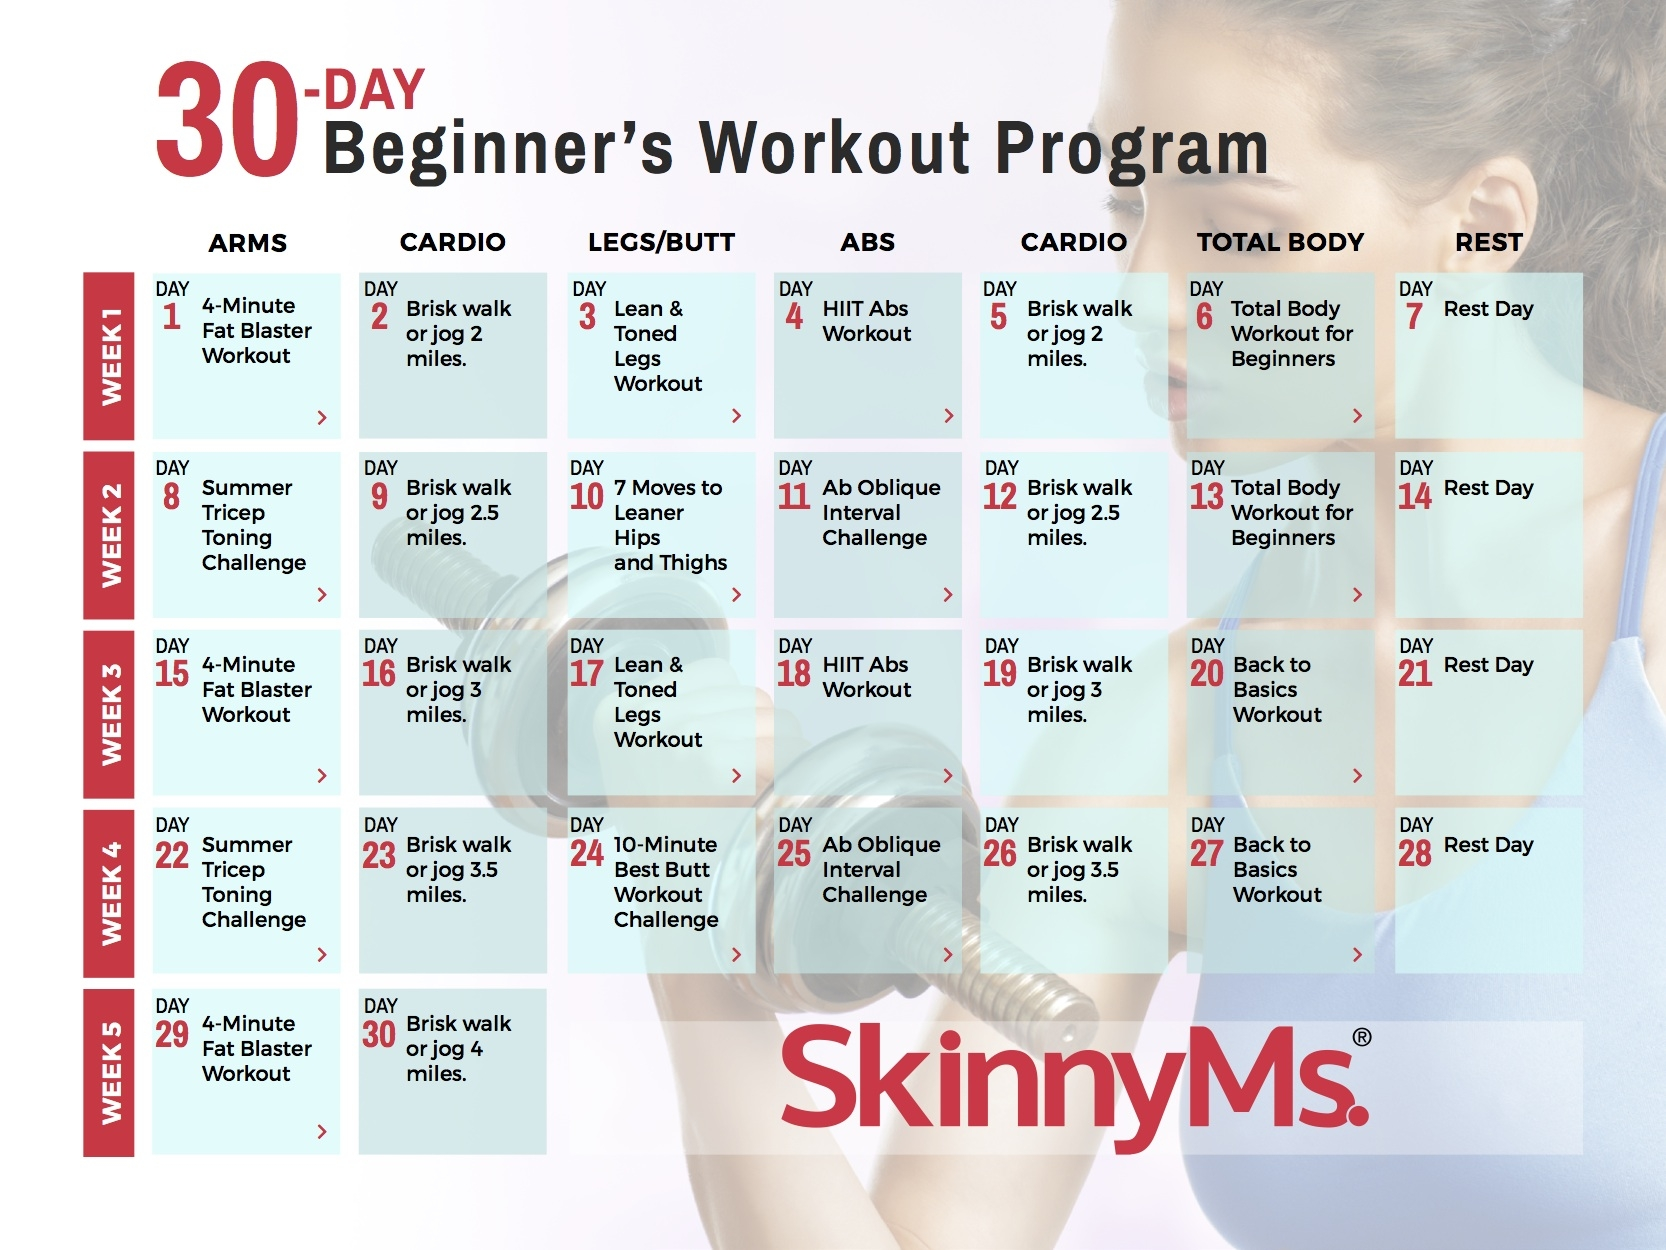 30 Day Beginners Workout Calendar Skinny Ms 89uj